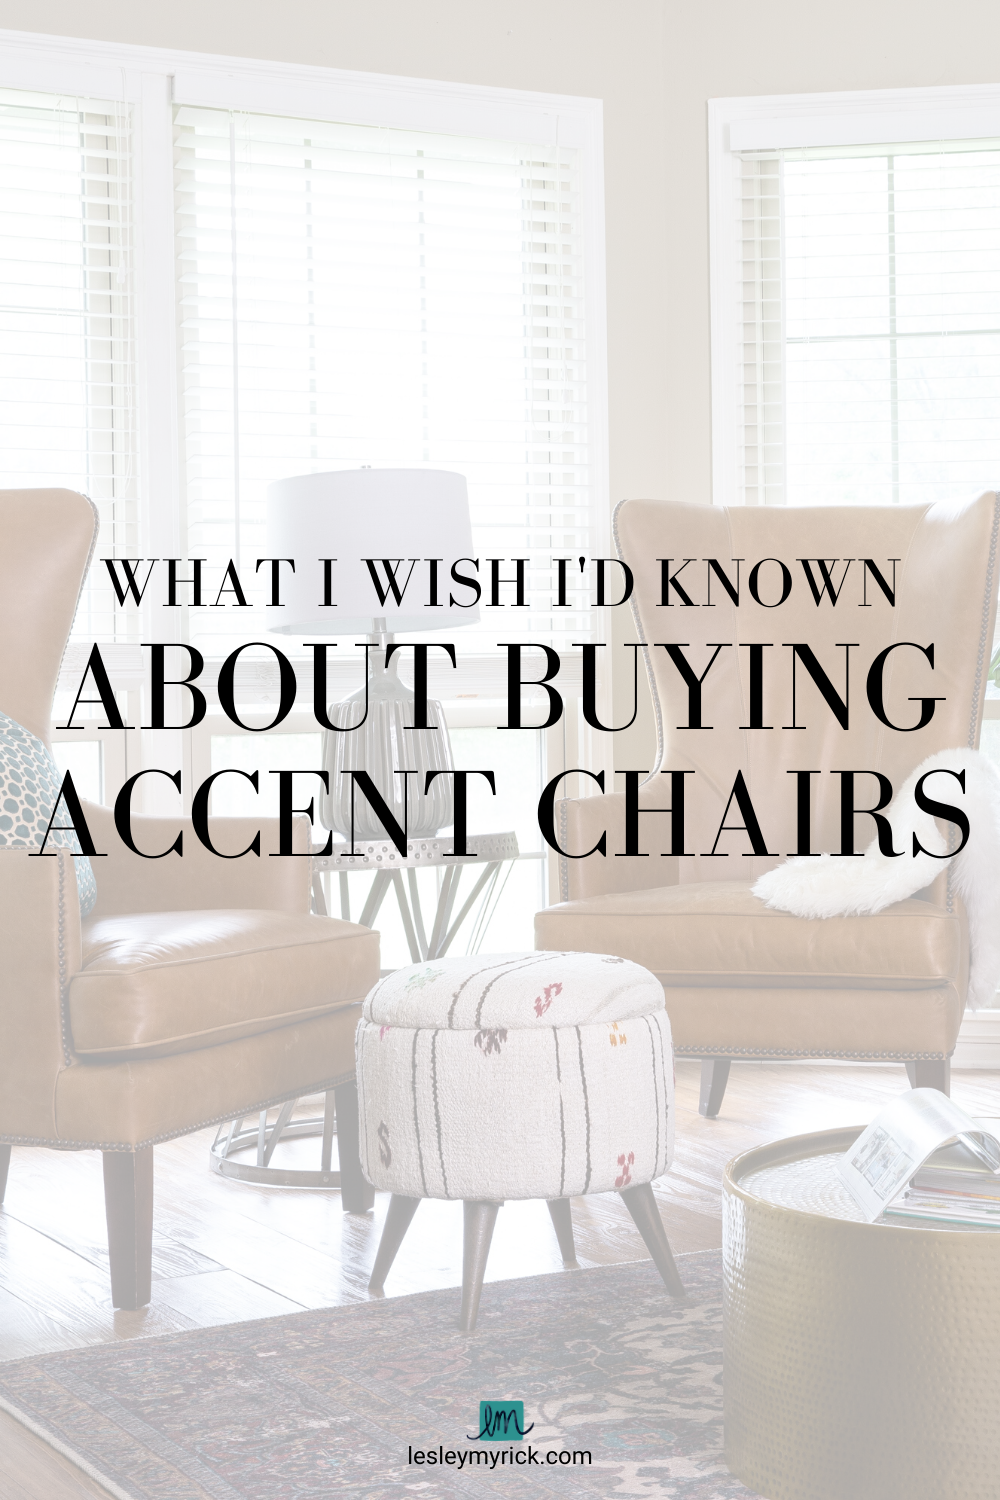 Don't make the same mistake I did! Here's what I wish I'd known about buying accent chairs.